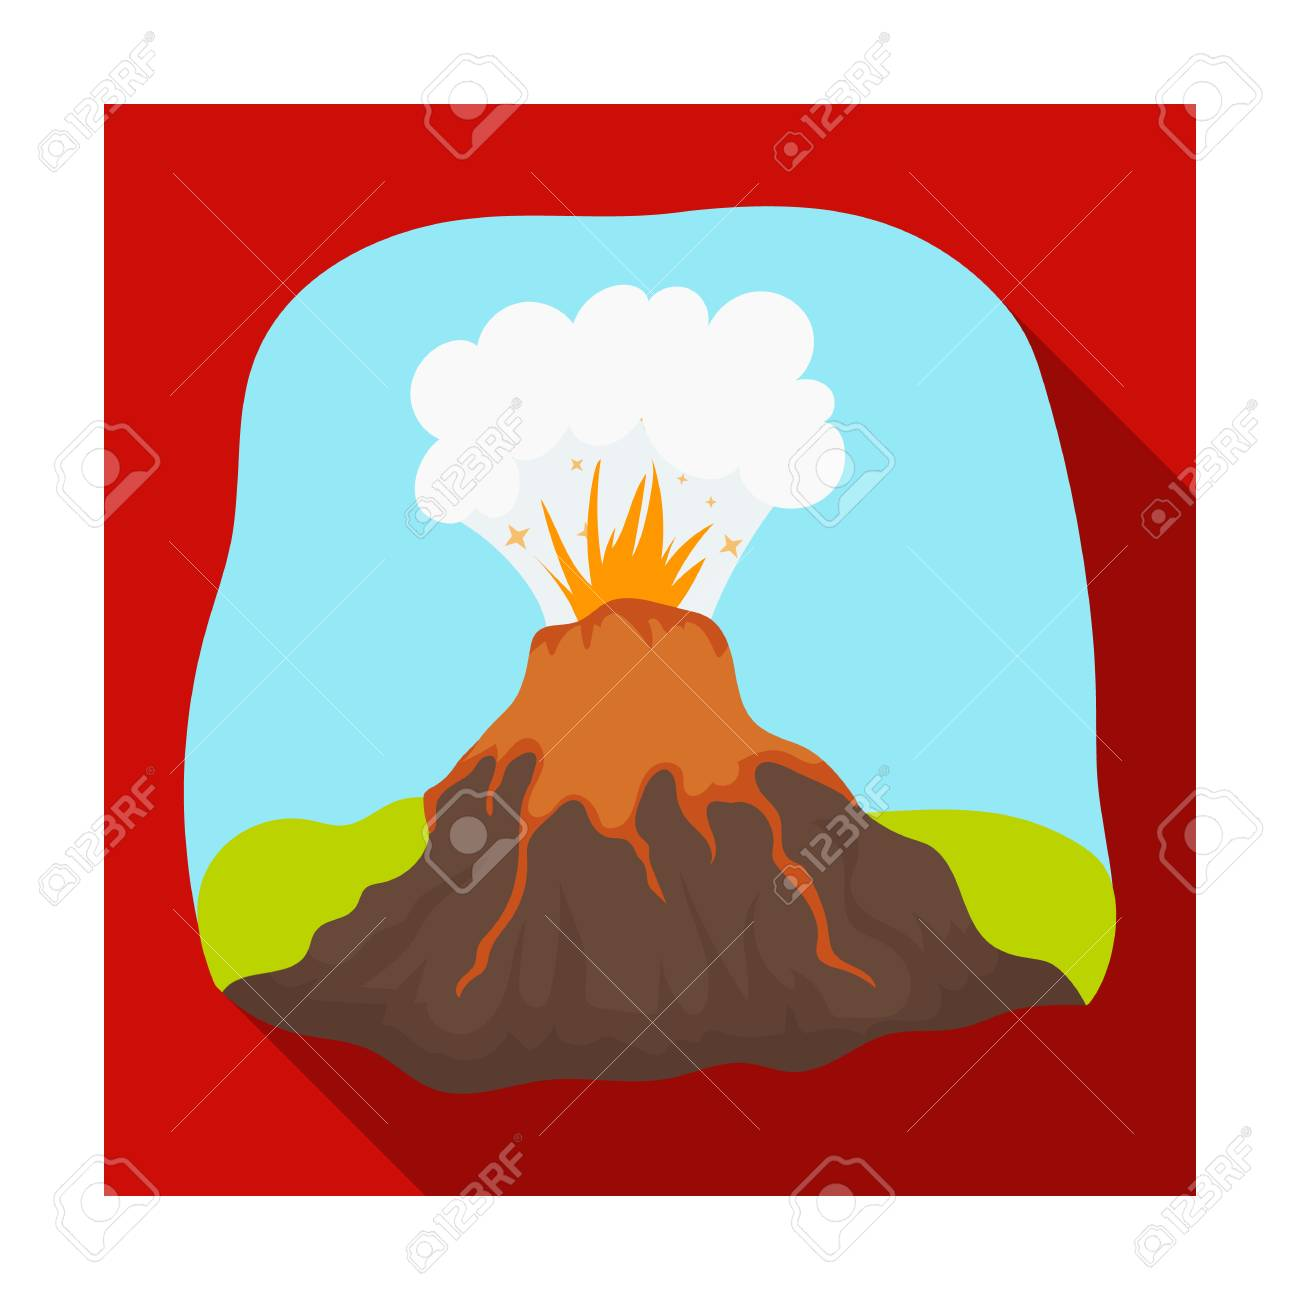 volcano eruption icon in flat style isolated on white background rh 123rf com basin landform clipart delta landform clipart